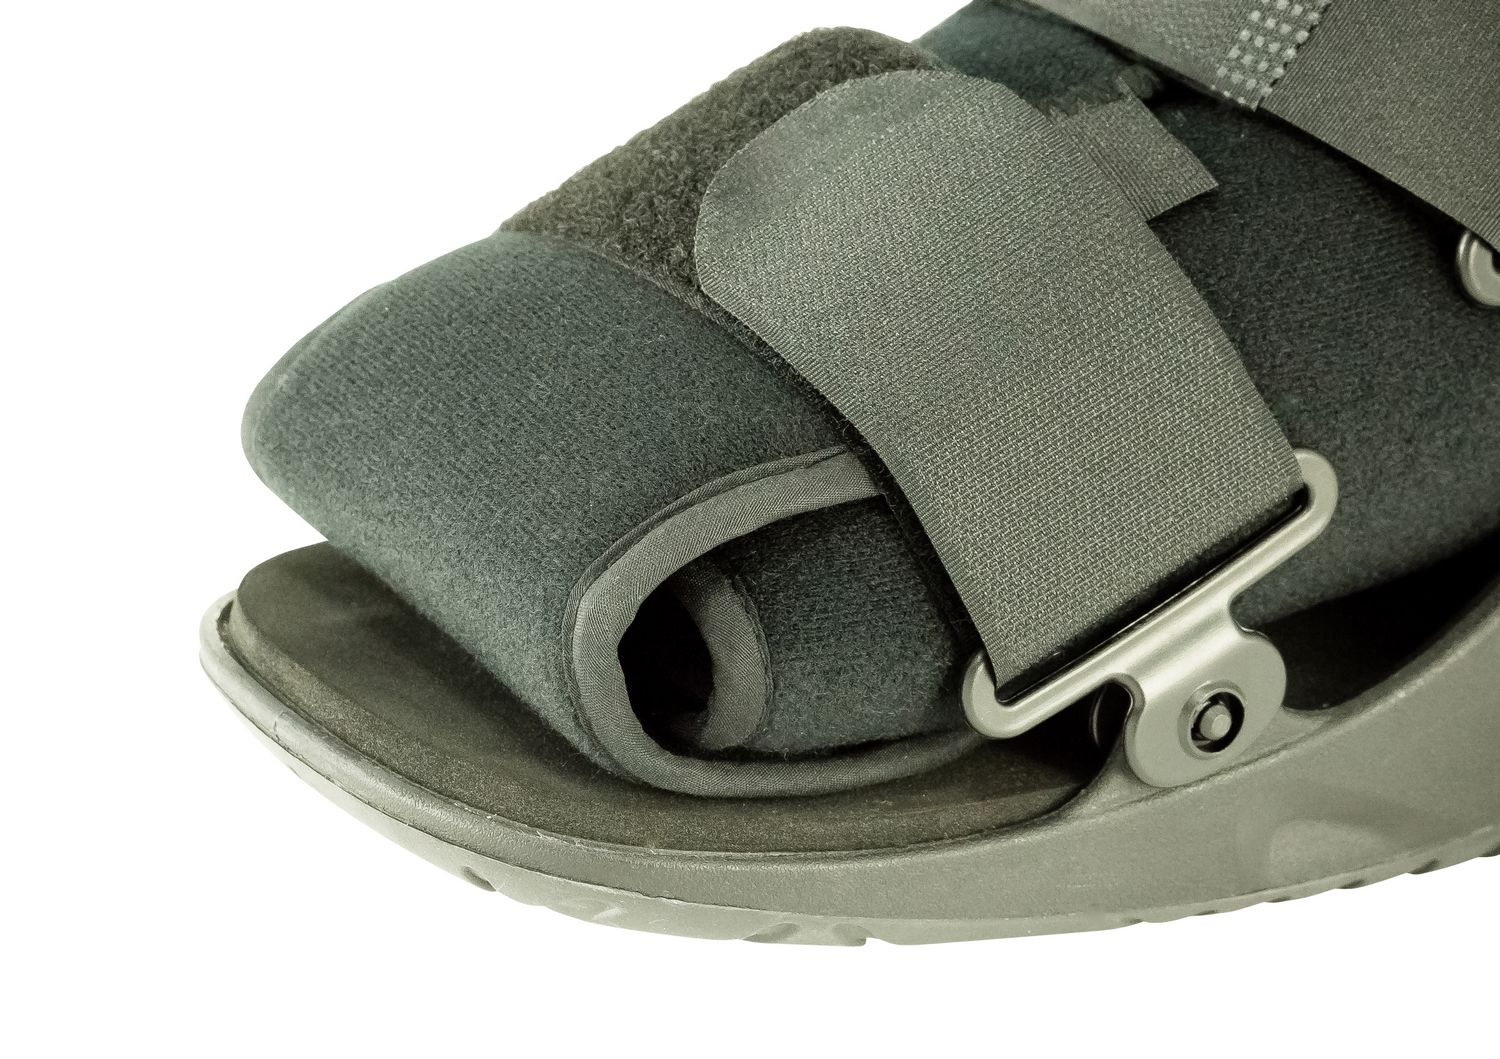 walking boot for stress fracture